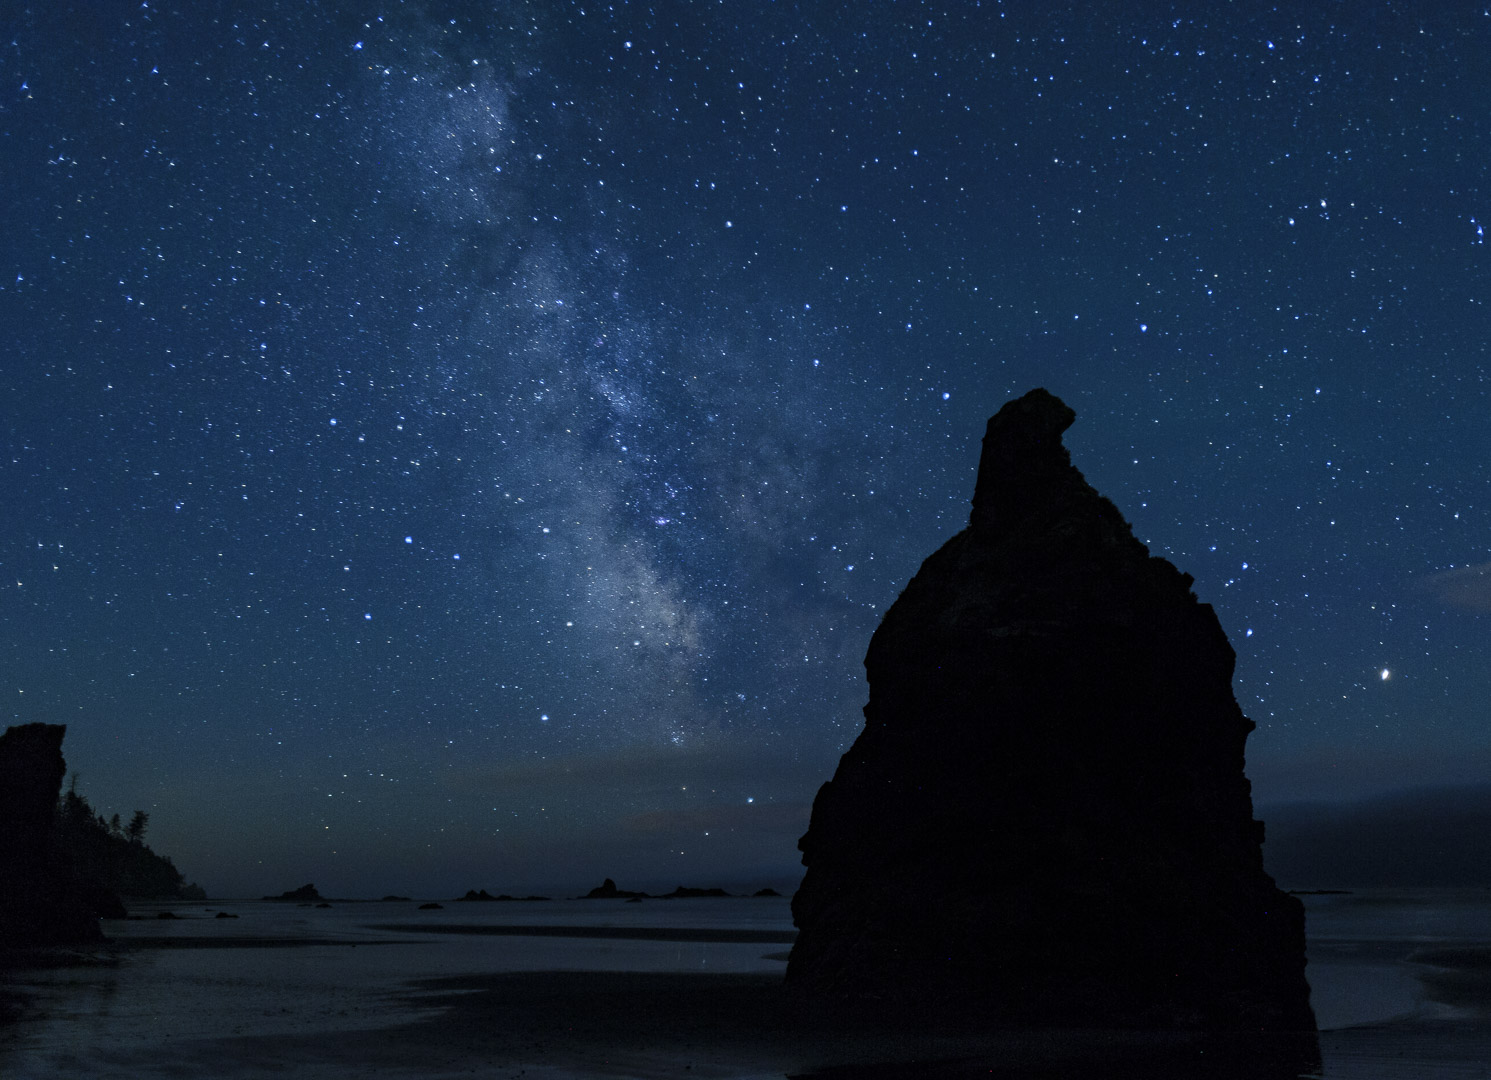 Figure 12. The Milky Way over Ruby Beach in Olympic National Park. © 2016 Chris Nicholson.